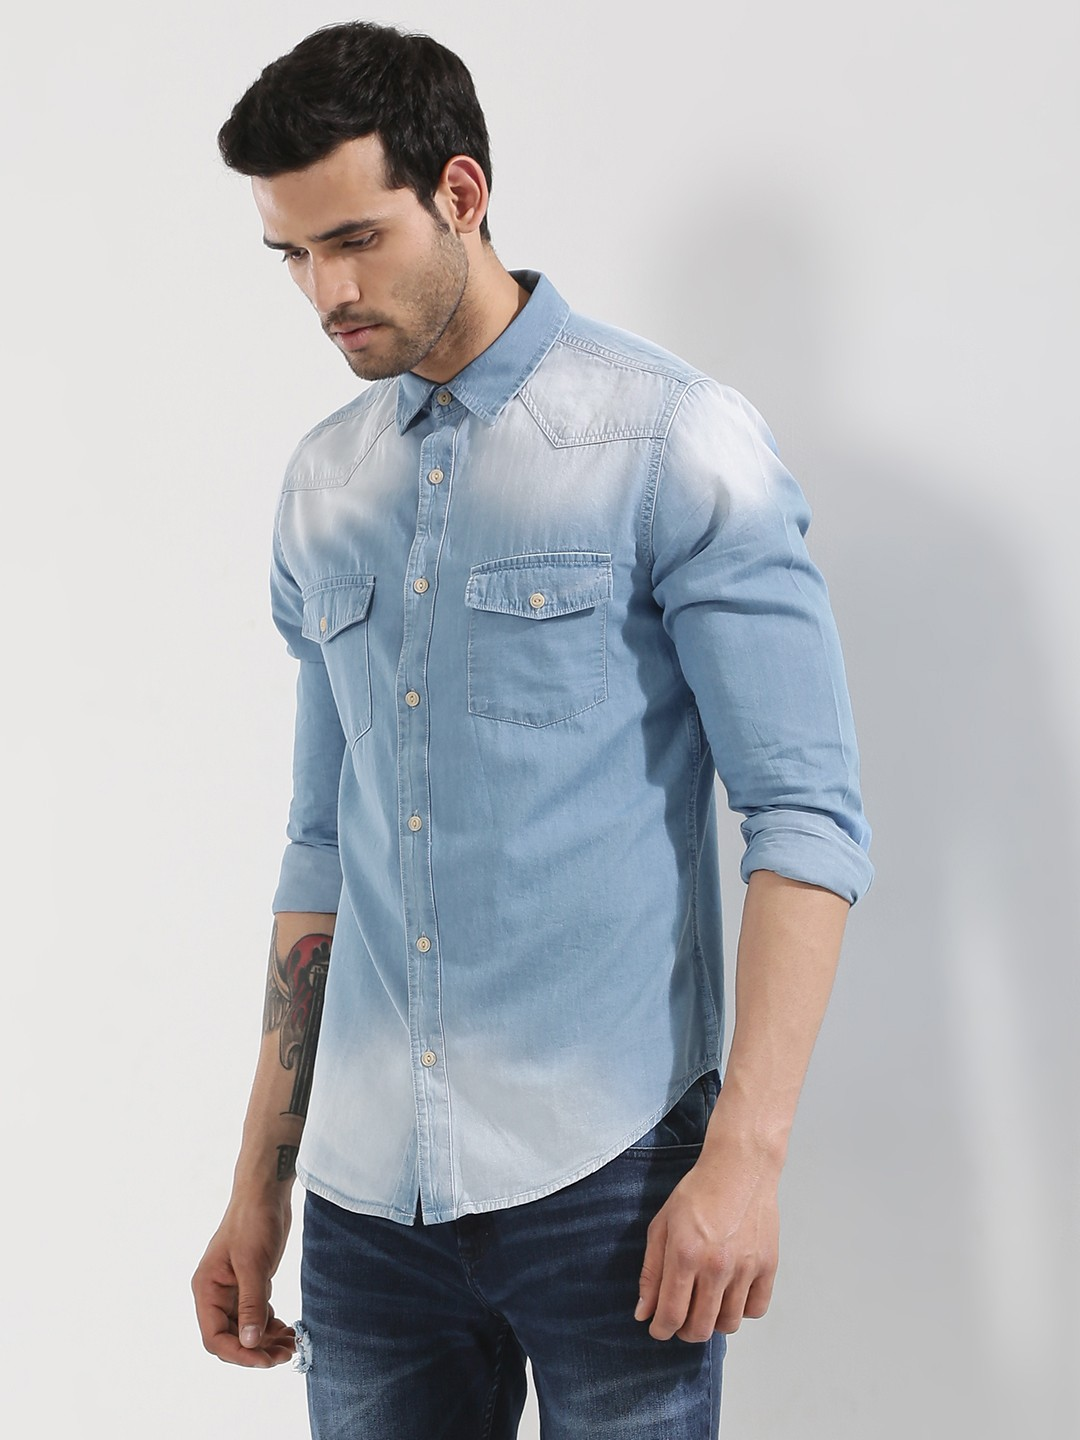 Buy Blue Saint Exclusive Denim Shirt In Mid Wash For Men